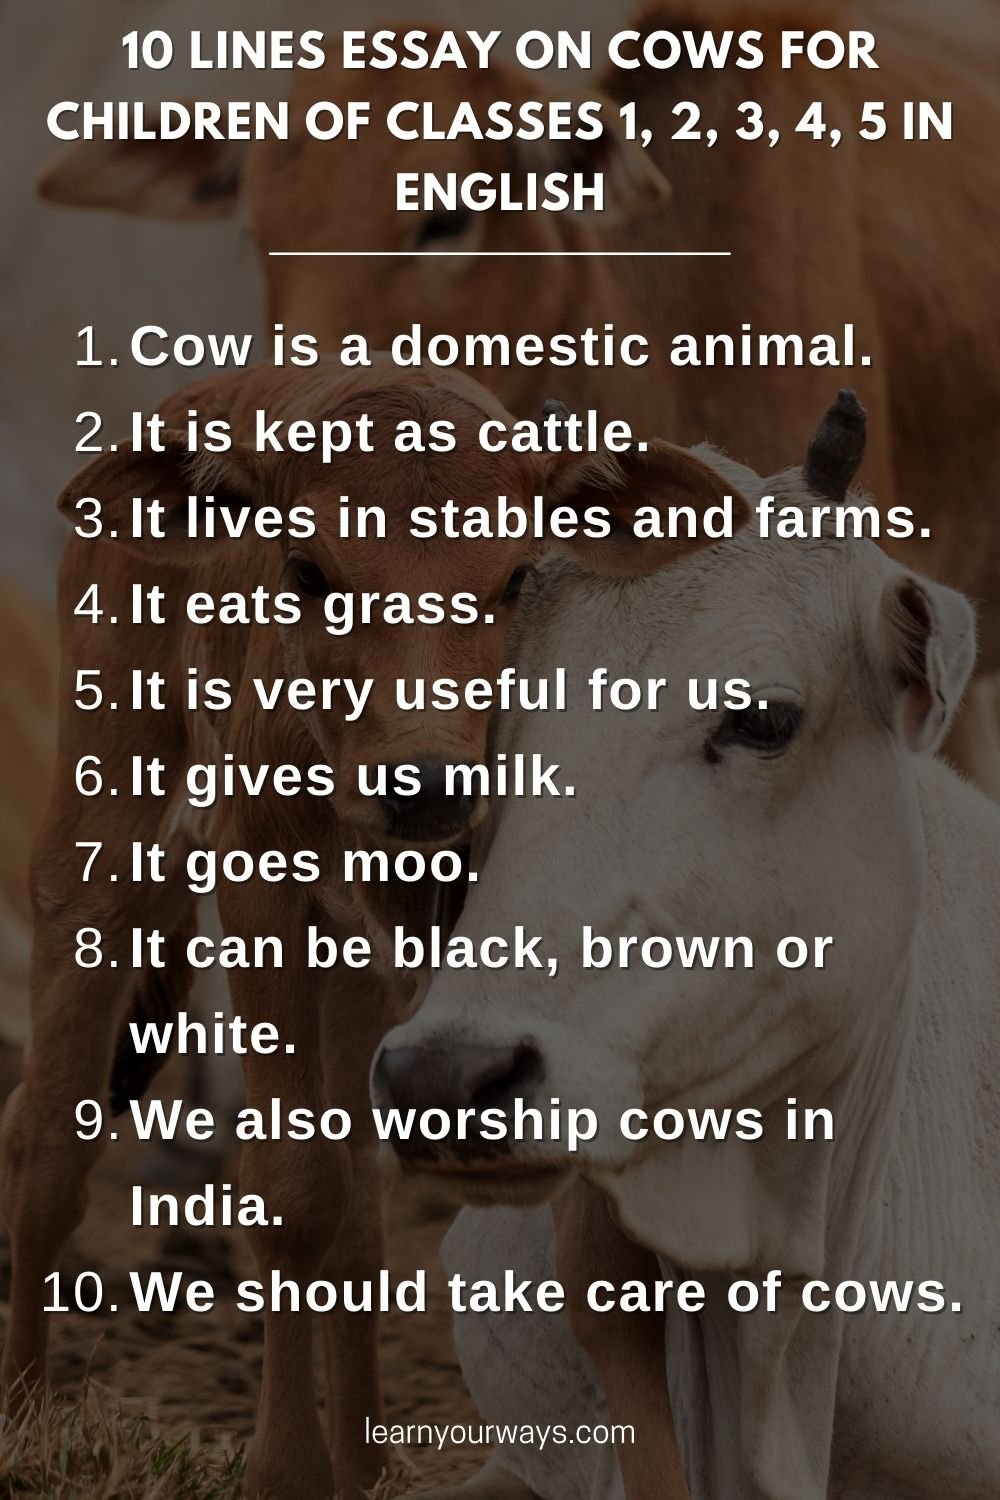 10 lines Essay on Cows